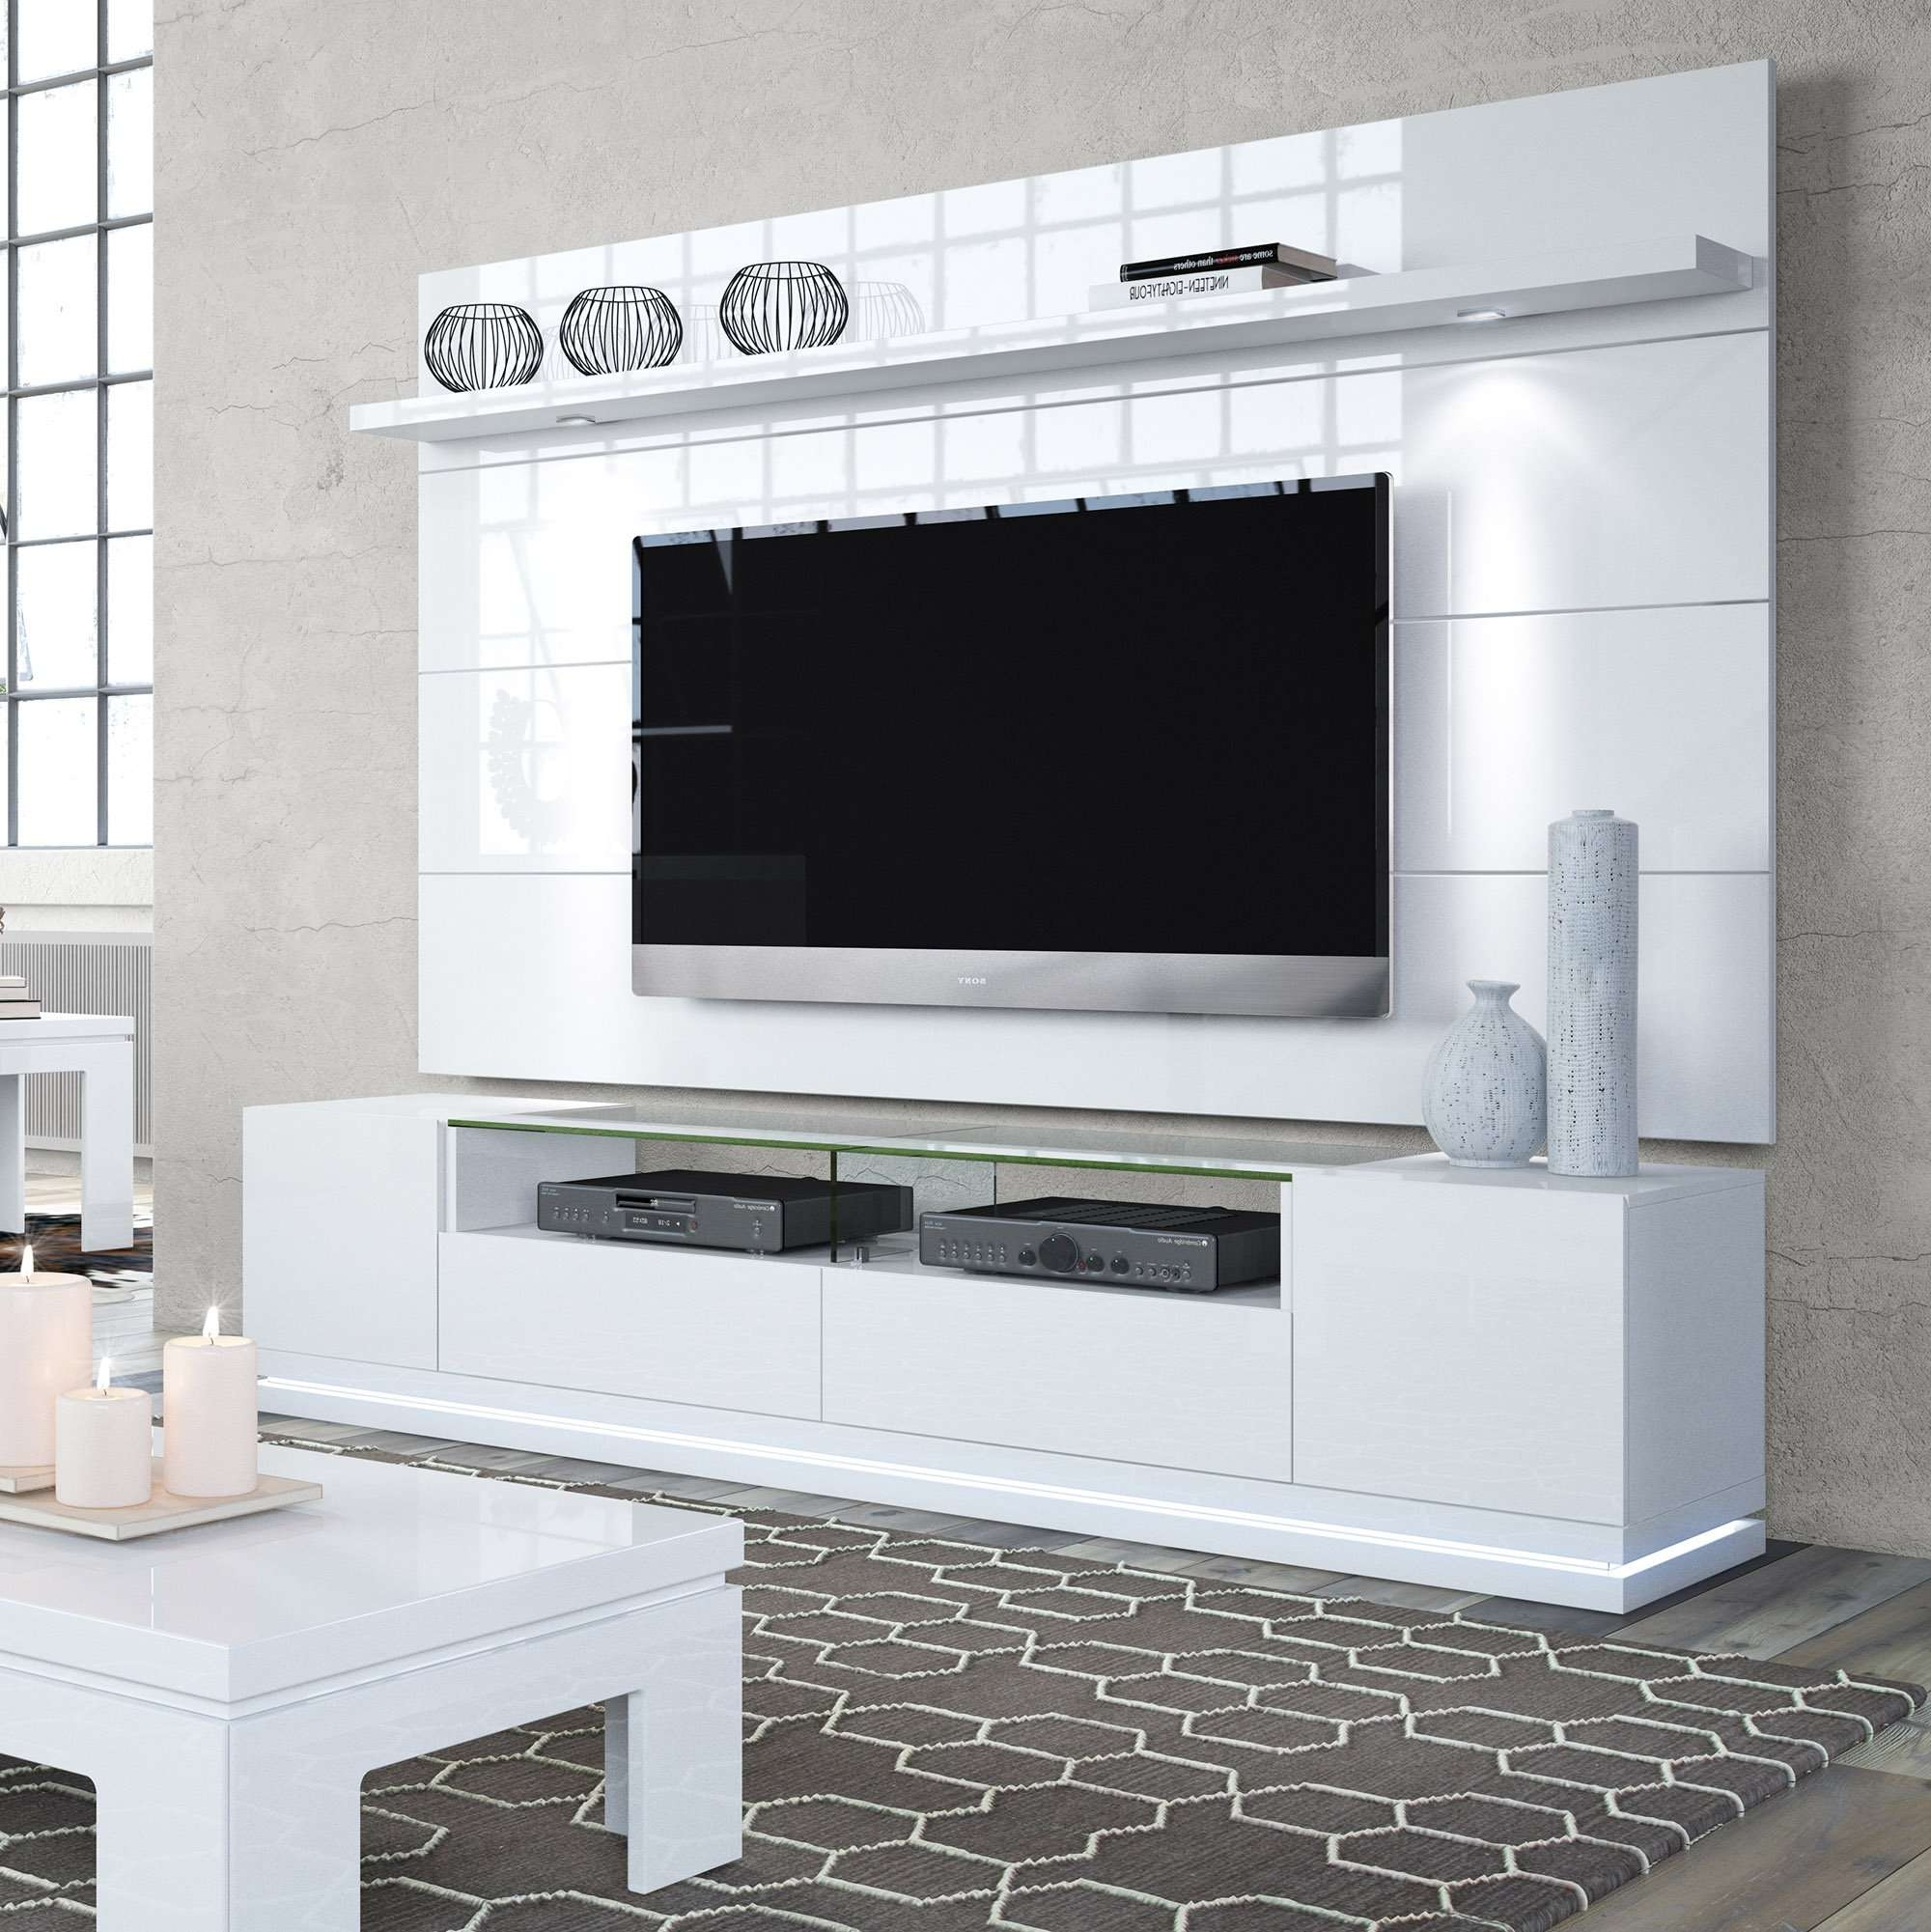 Vanderbilt White Gloss Tv Stand & Cabrini 2.2 Floating Wall Tv With Regard To White Gloss Tv Stands (Gallery 9 of 15)